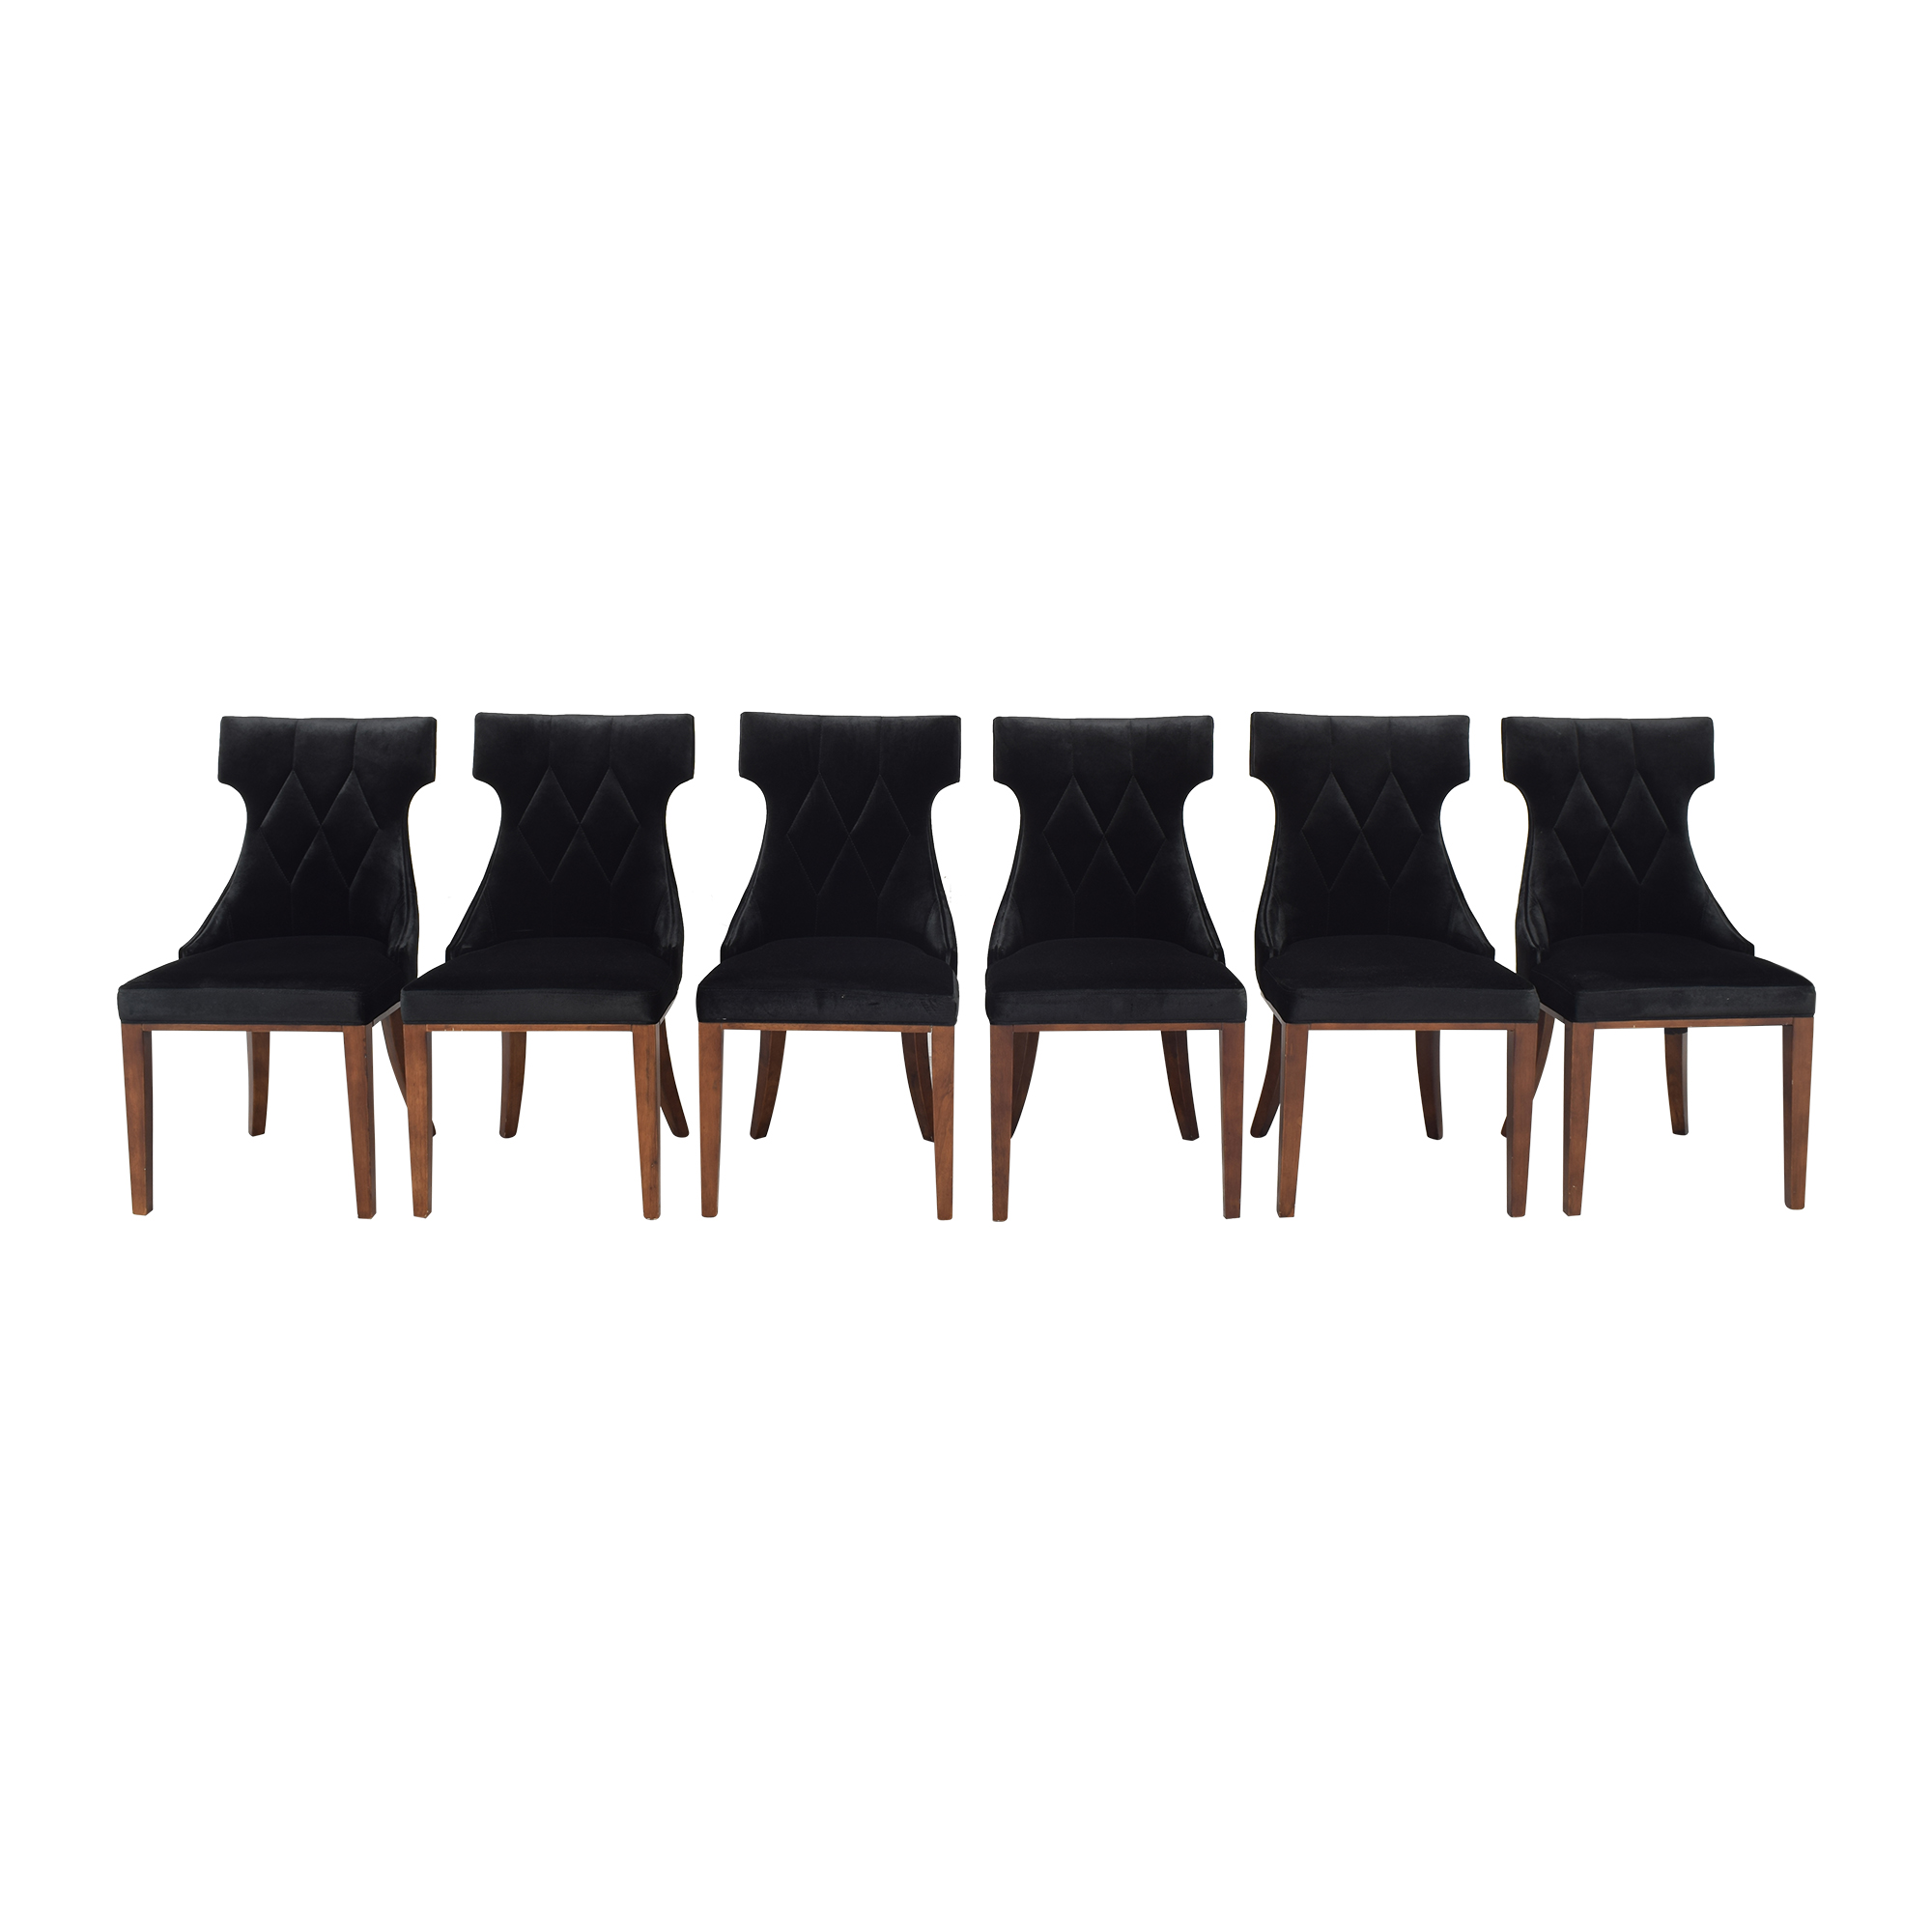 buy Silver Orchid Silver Orchid Fontan Velvet Dining Chairs online